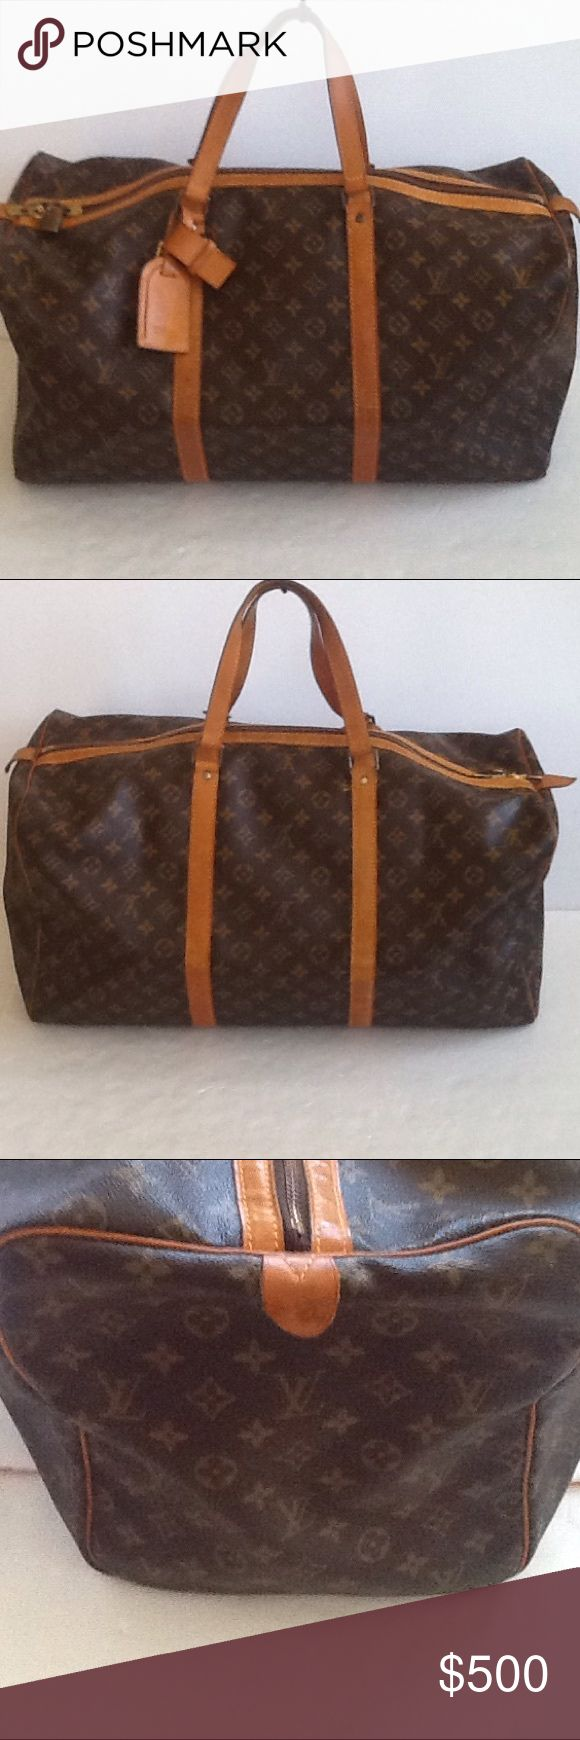 Authentic Louis Vuitton Duffle 55 Monogram Bag. The straps and leather showed signs of used. The canvas and inside linen are good. The dimension is 22, 10 and 11. The bad was made in France and no date code as it was made before 1980. Louis Vuitton Bags Travel Bags